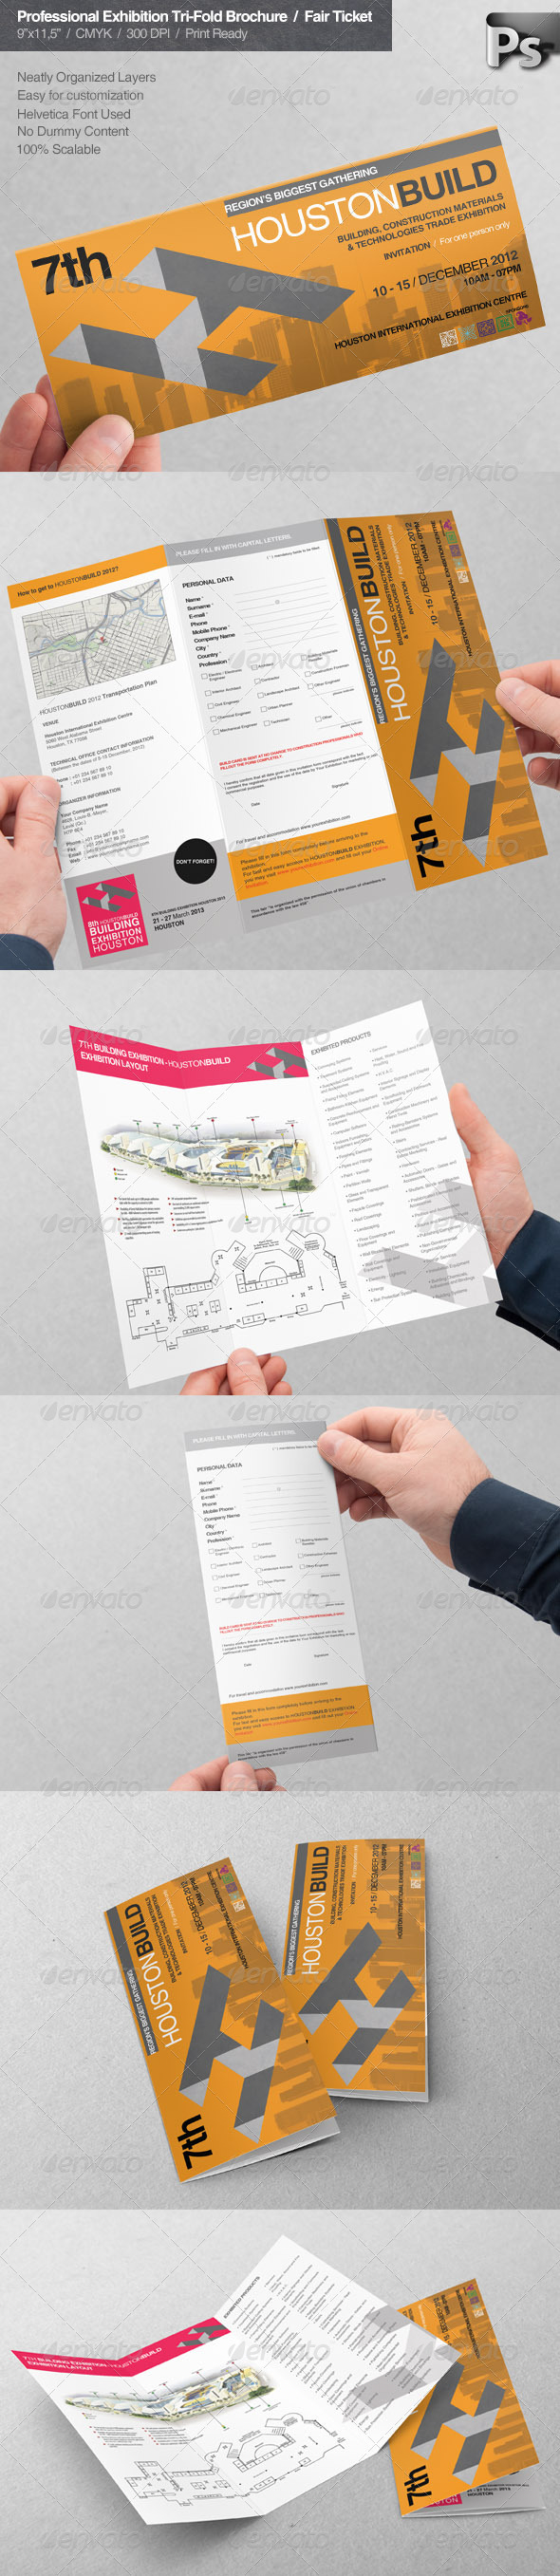 Professional Exhibition Tri-Fold Brochure / Ticket - Brochures Print Templates